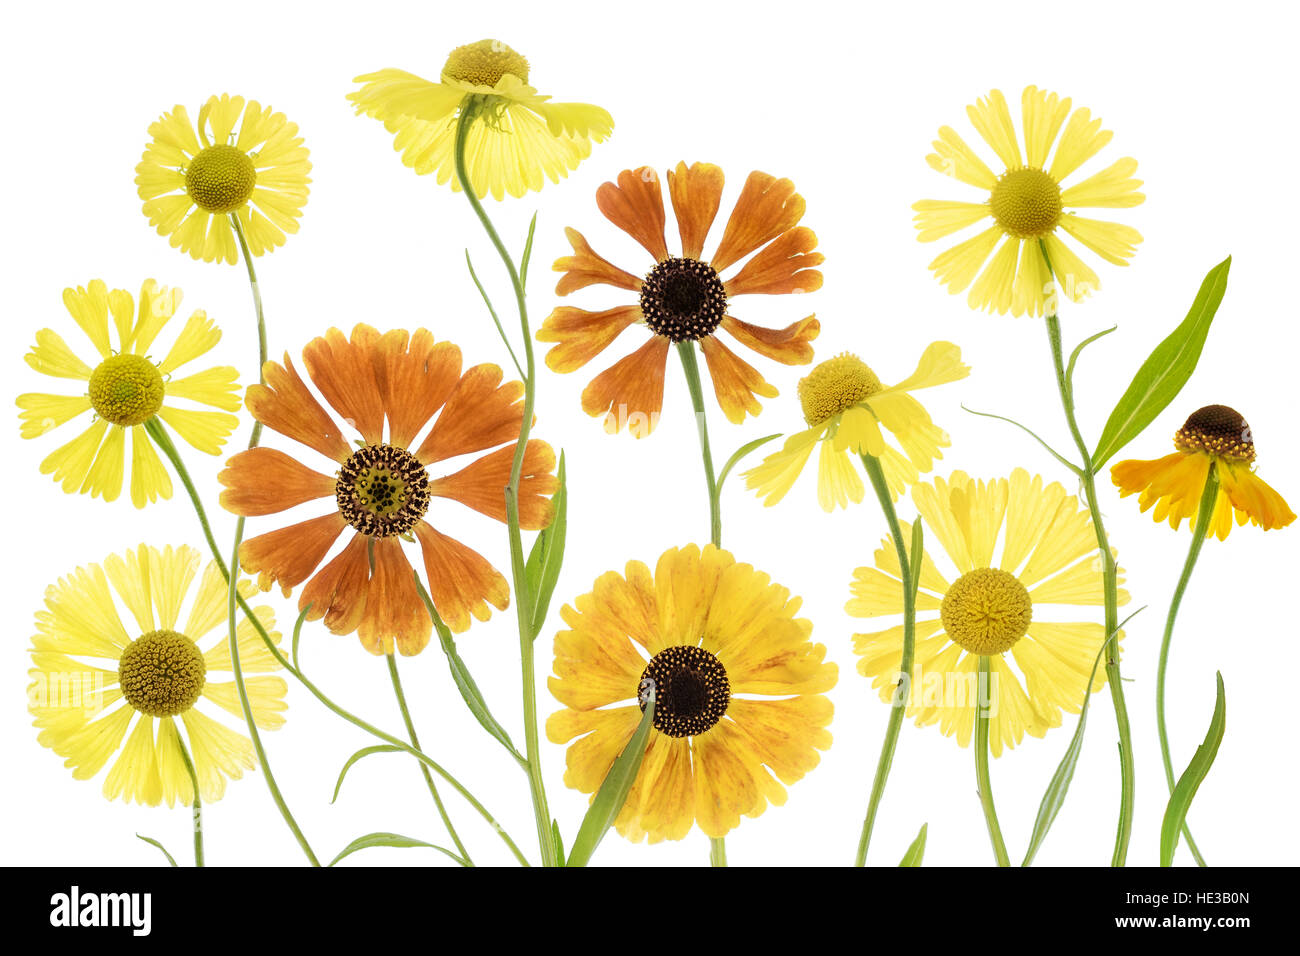 An arrangement of Helenium flowers on a white background - Stock Image